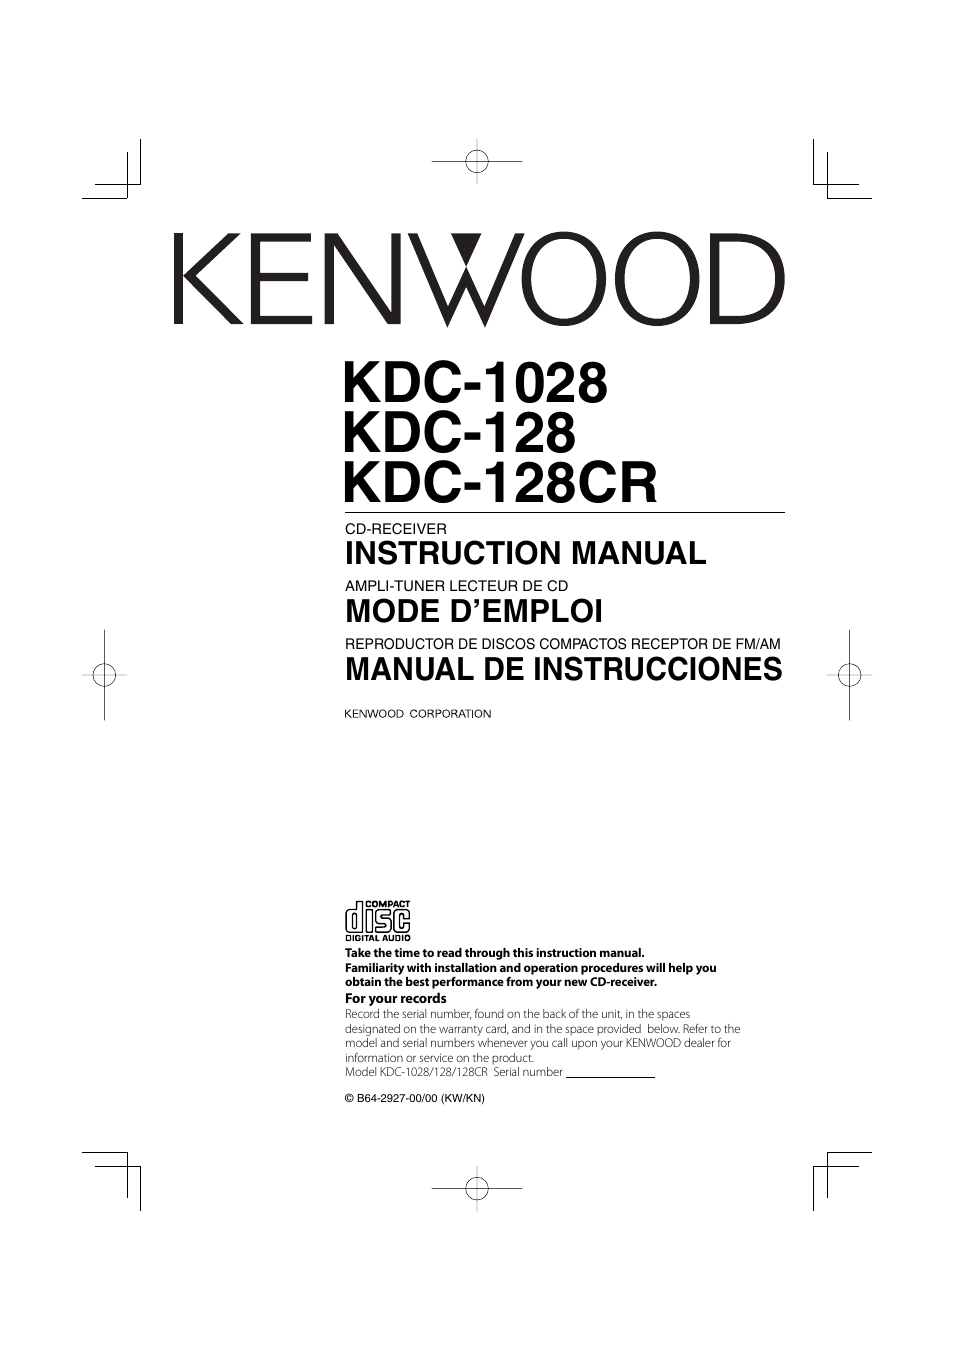 Kenwood Kdc 128 Wiring Diagram Manual Guide. Kenwood Kdc 128cr User Manual 72 Pages Also For 1028 128 Rh Manualsdir Car Stereo Wiring Diagram. Wiring. Kenwood Kdc Mp205 Wiring Diagram Stereo At Scoala.co